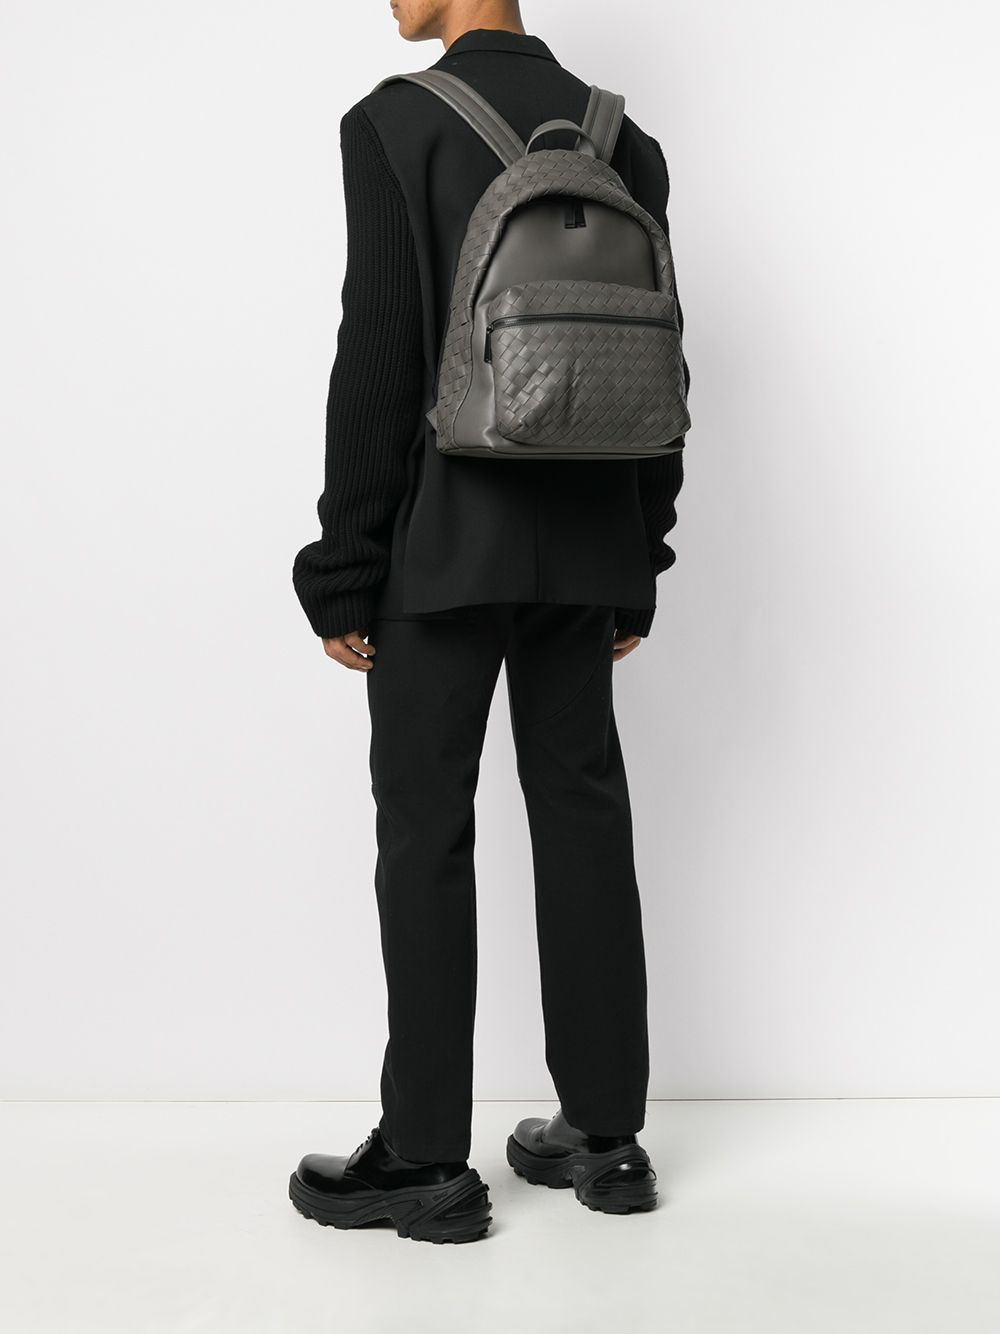 Intrecciato Weave Backpack On Model